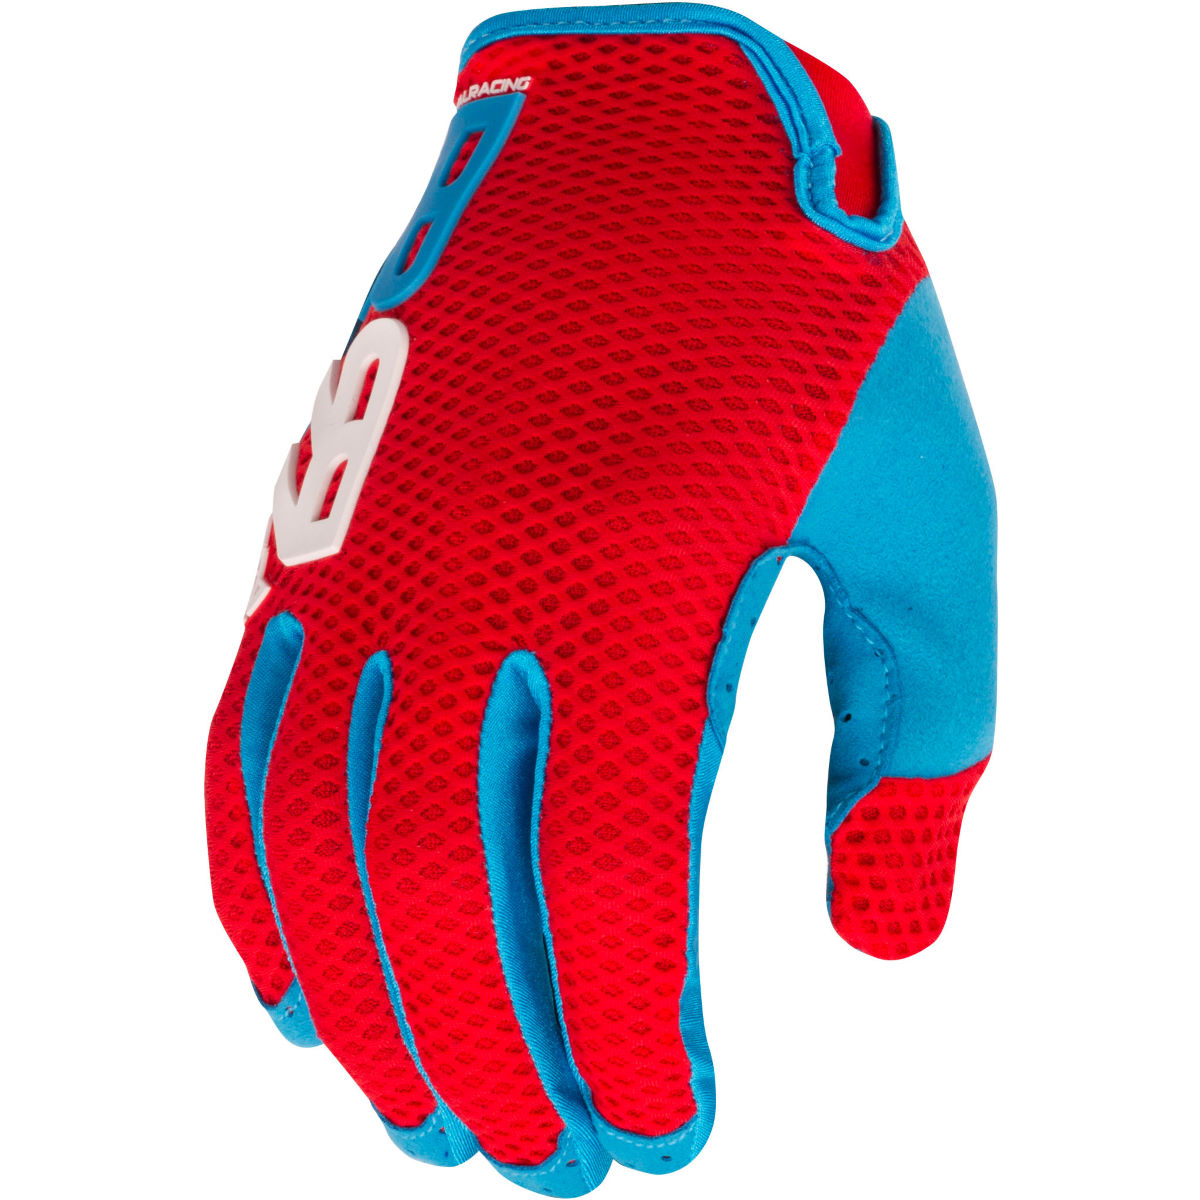 Royal Quantum Glove - Guantes largos